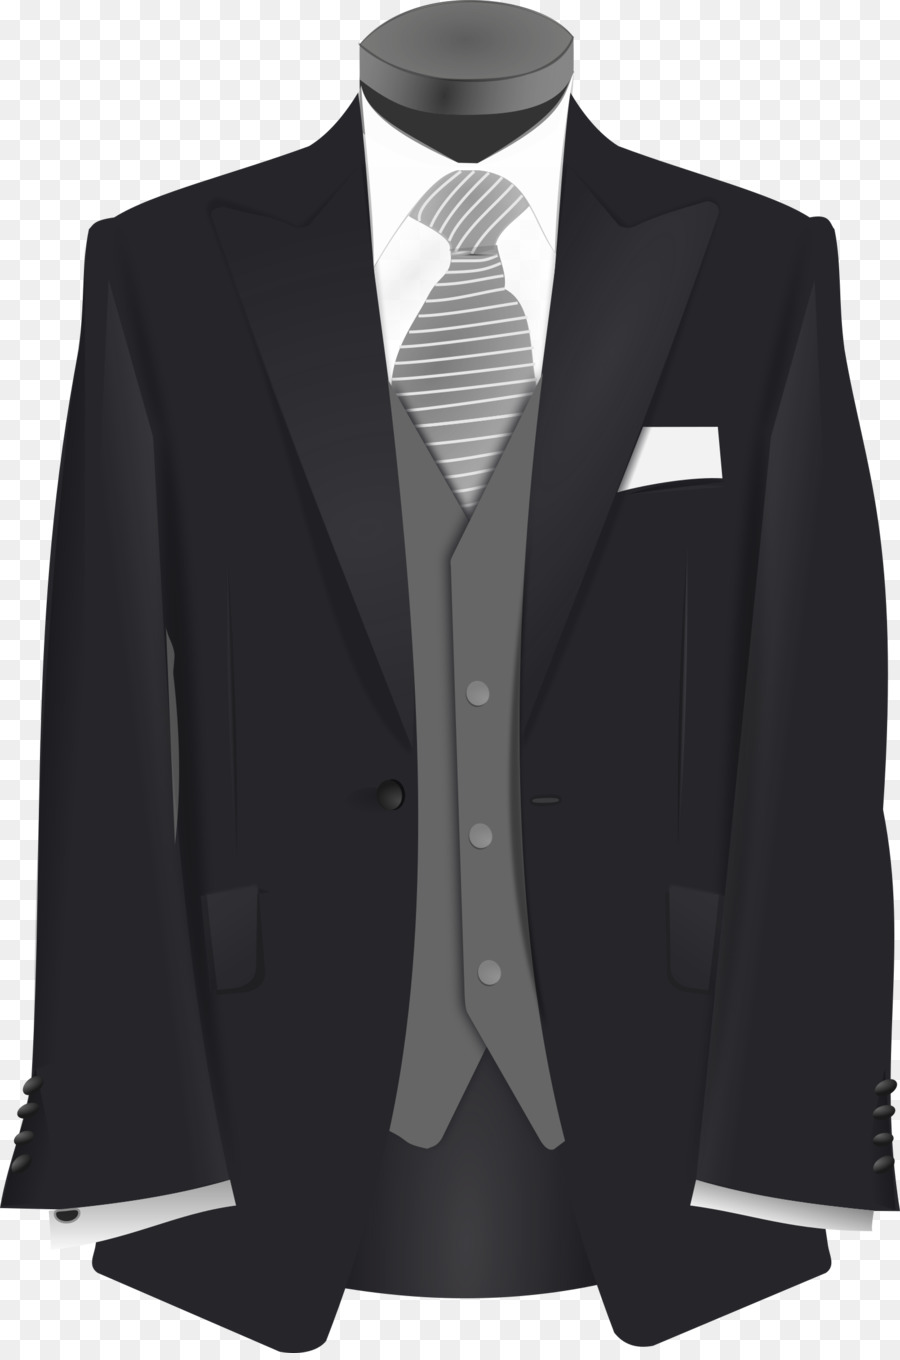 SUITS AND JACKETS - Blazers Clips Affordable Cheap Online Enjoy Shopping Outlet Get Authentic Shop Your Own 6iJgsKFY